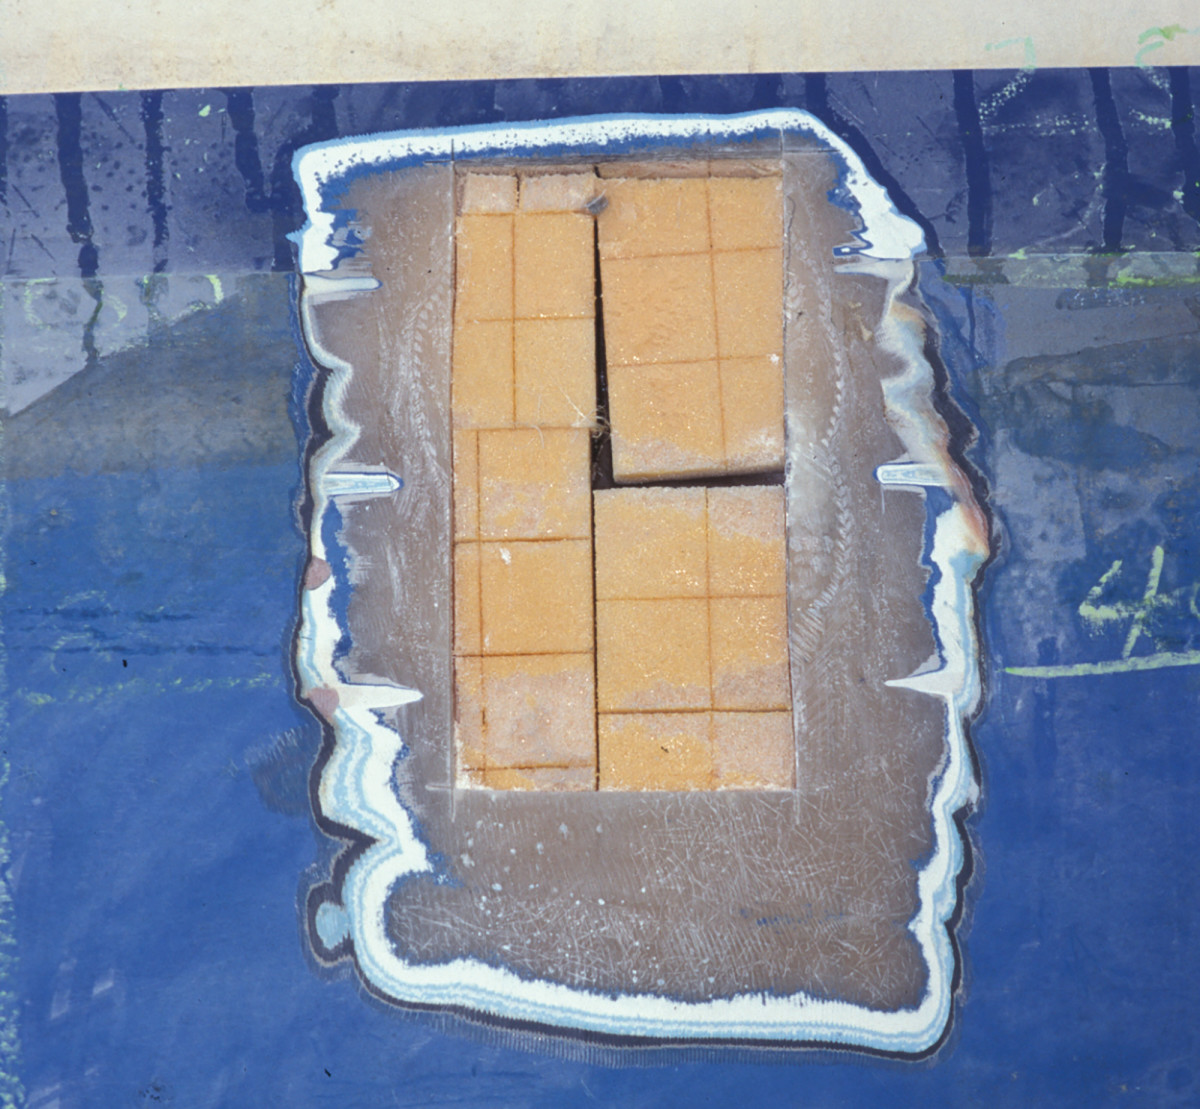 Core patch prepped for filler and resin.